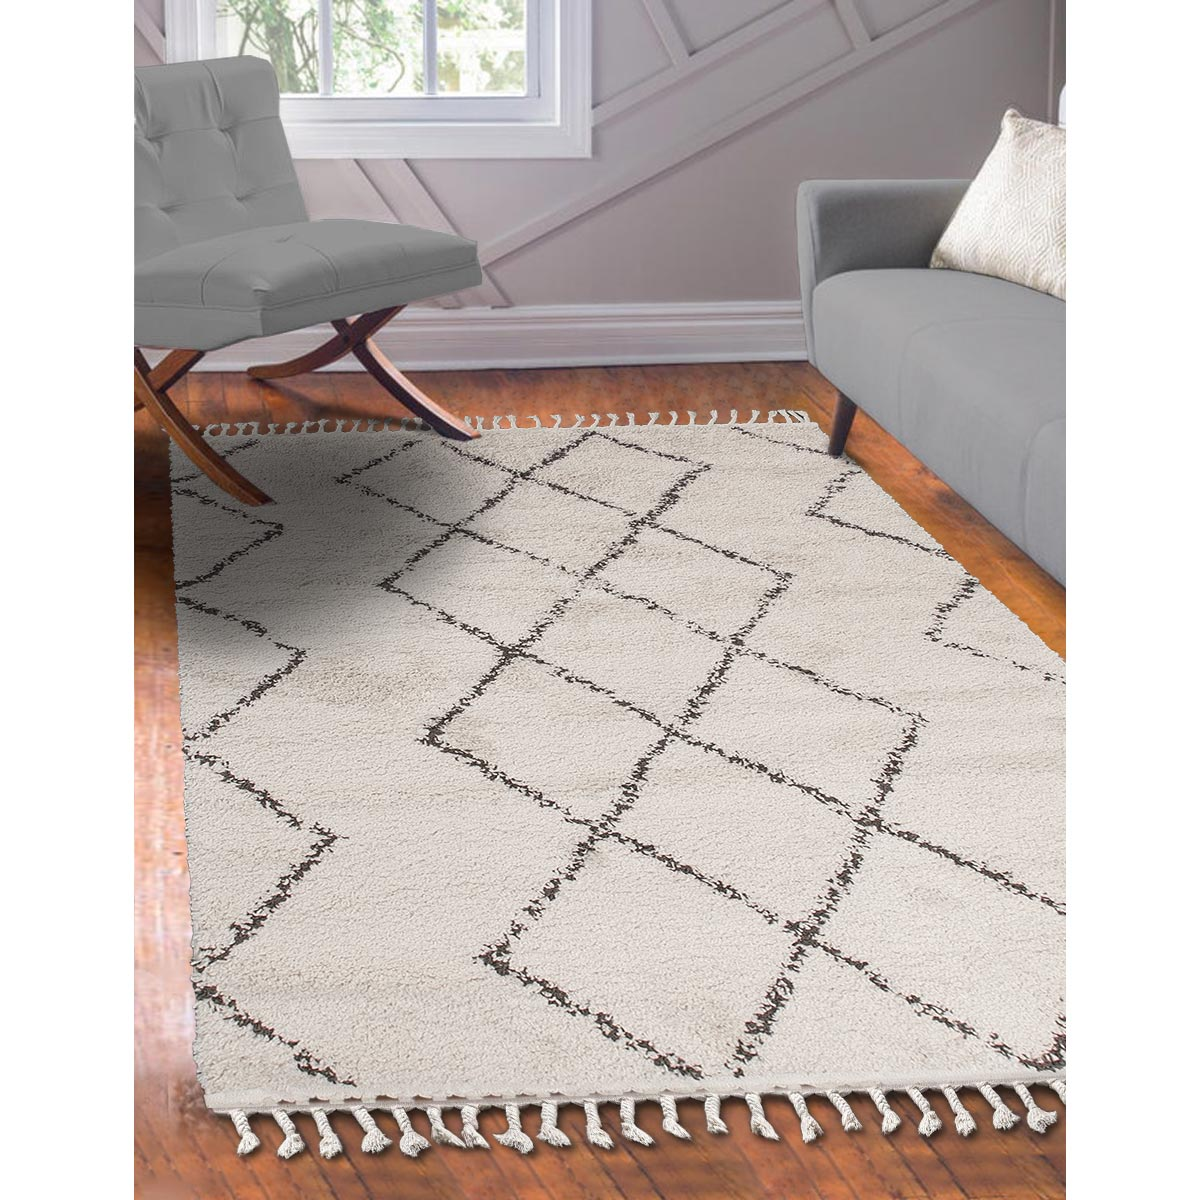 Shaggy Marrakech Rug 03 Cream/Black 3